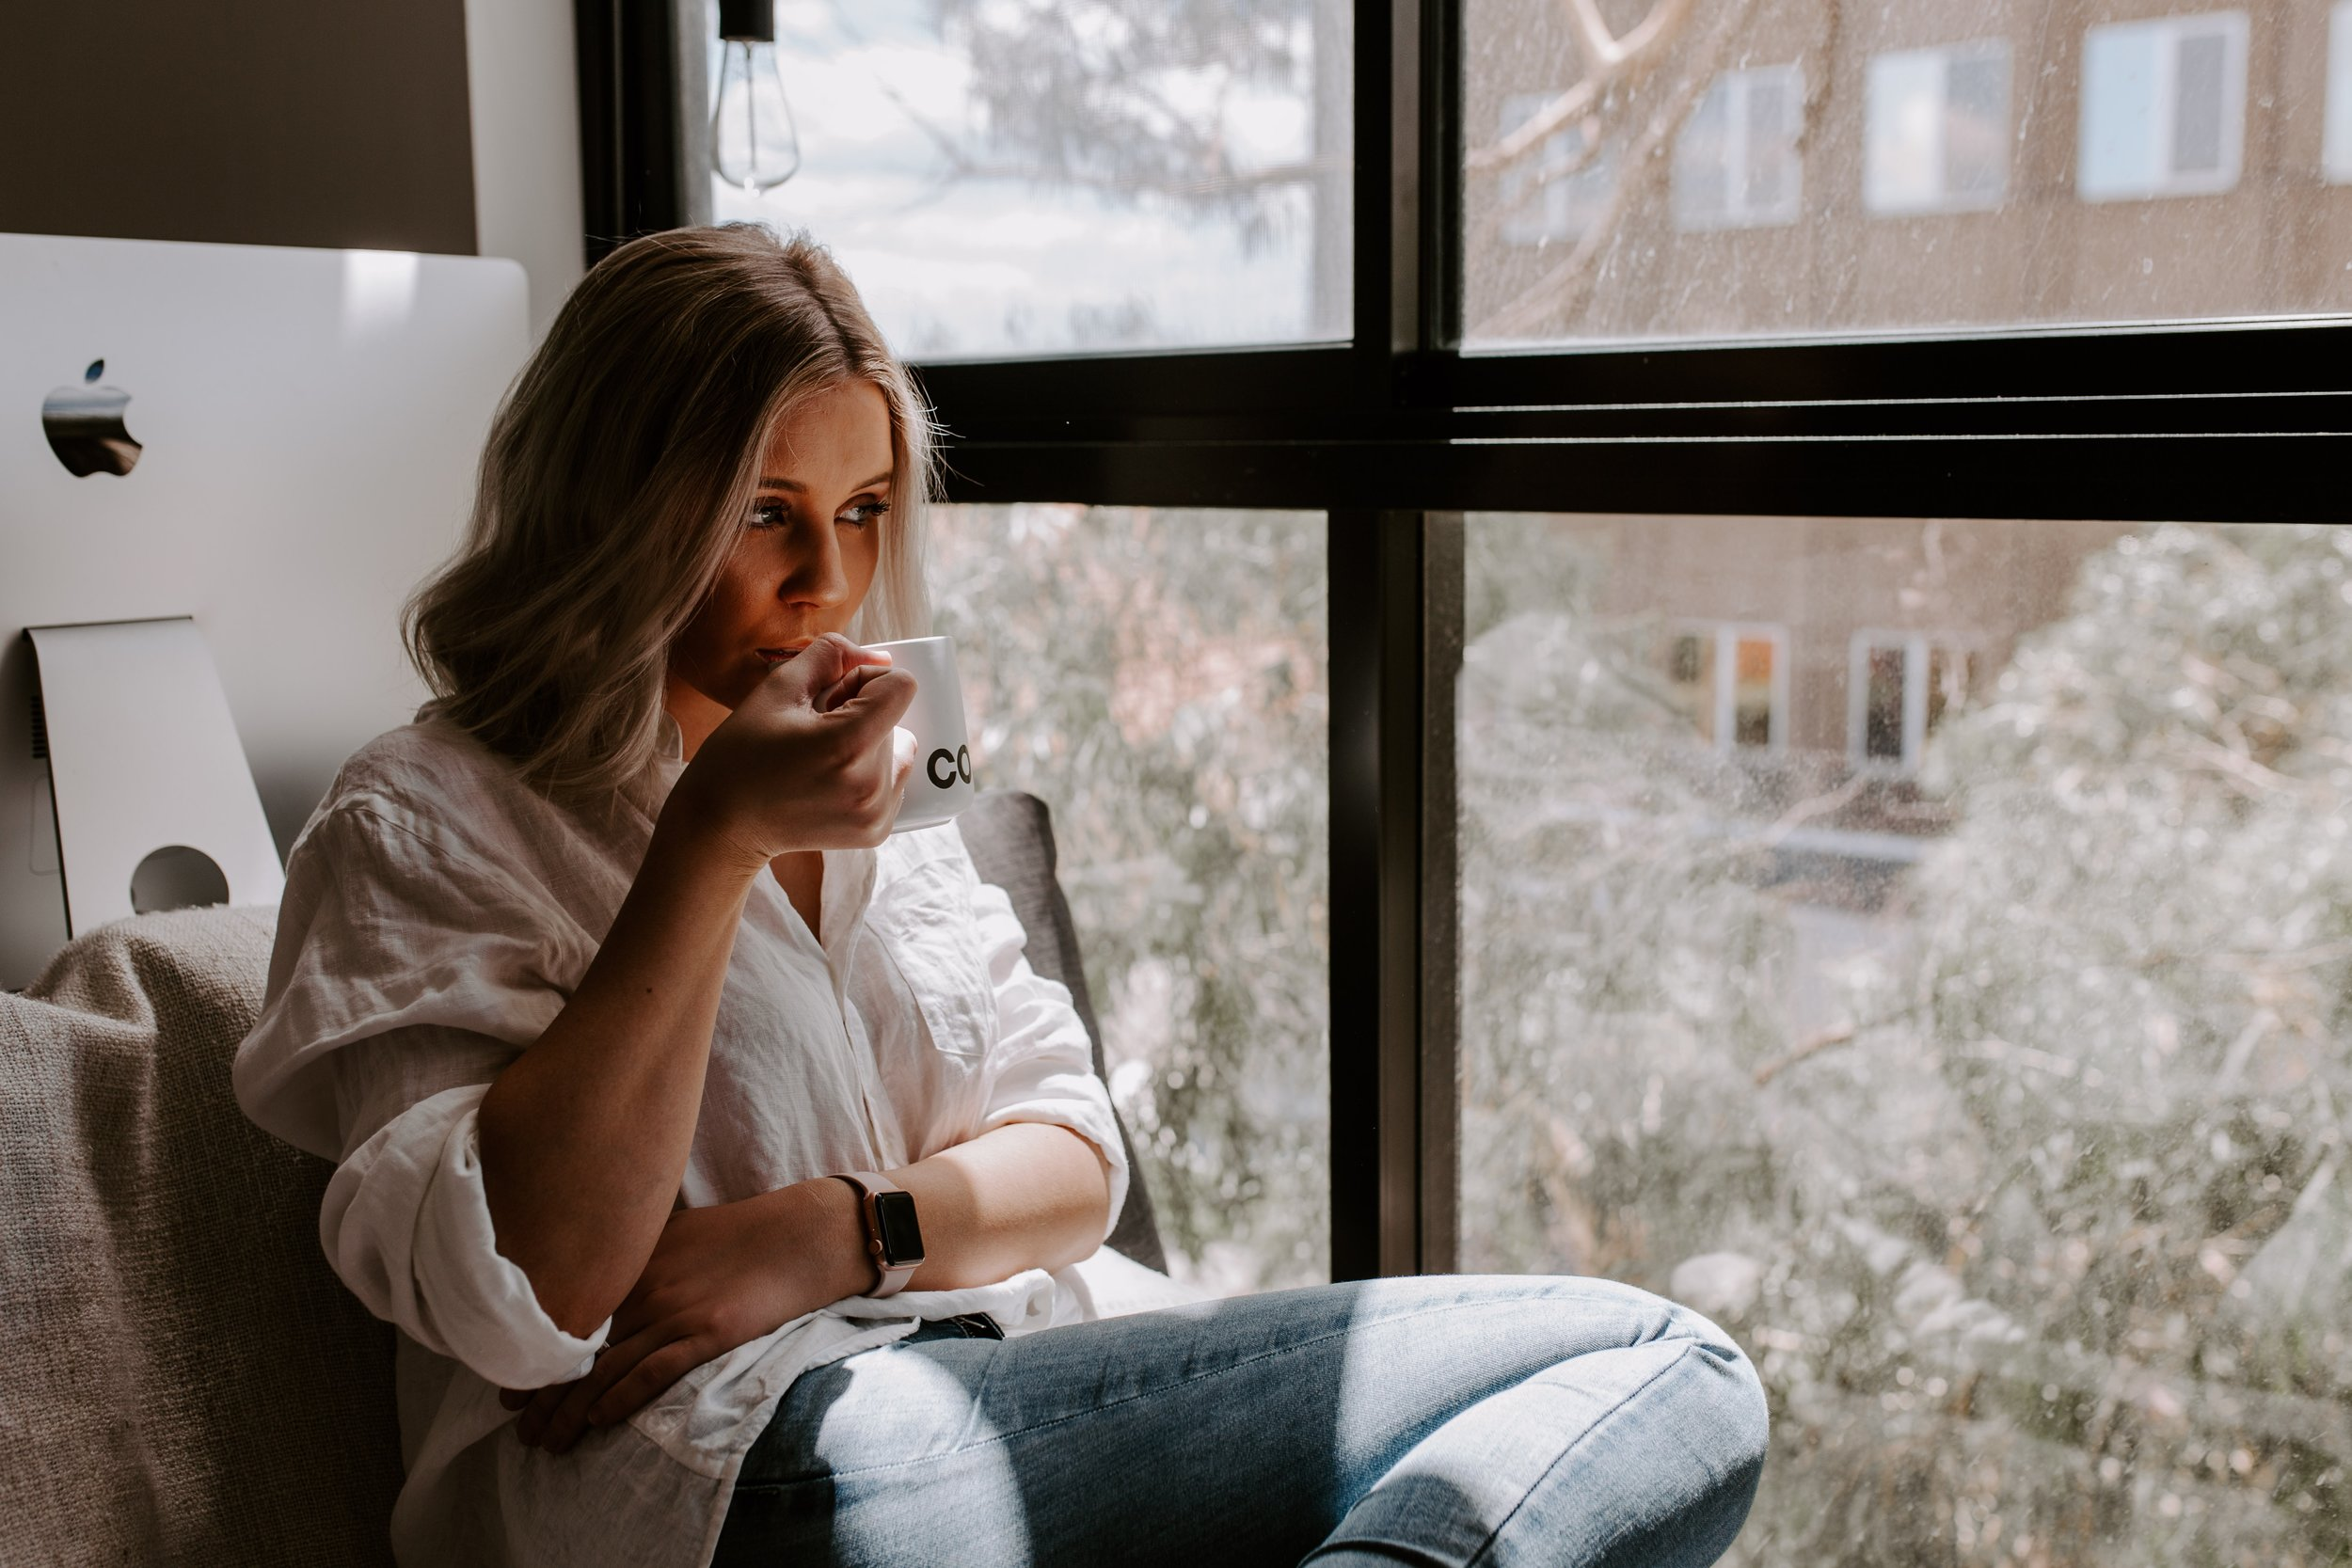 Women often struggle with asking for what they want, whether a higher paying job, a larger role or command of a room. -